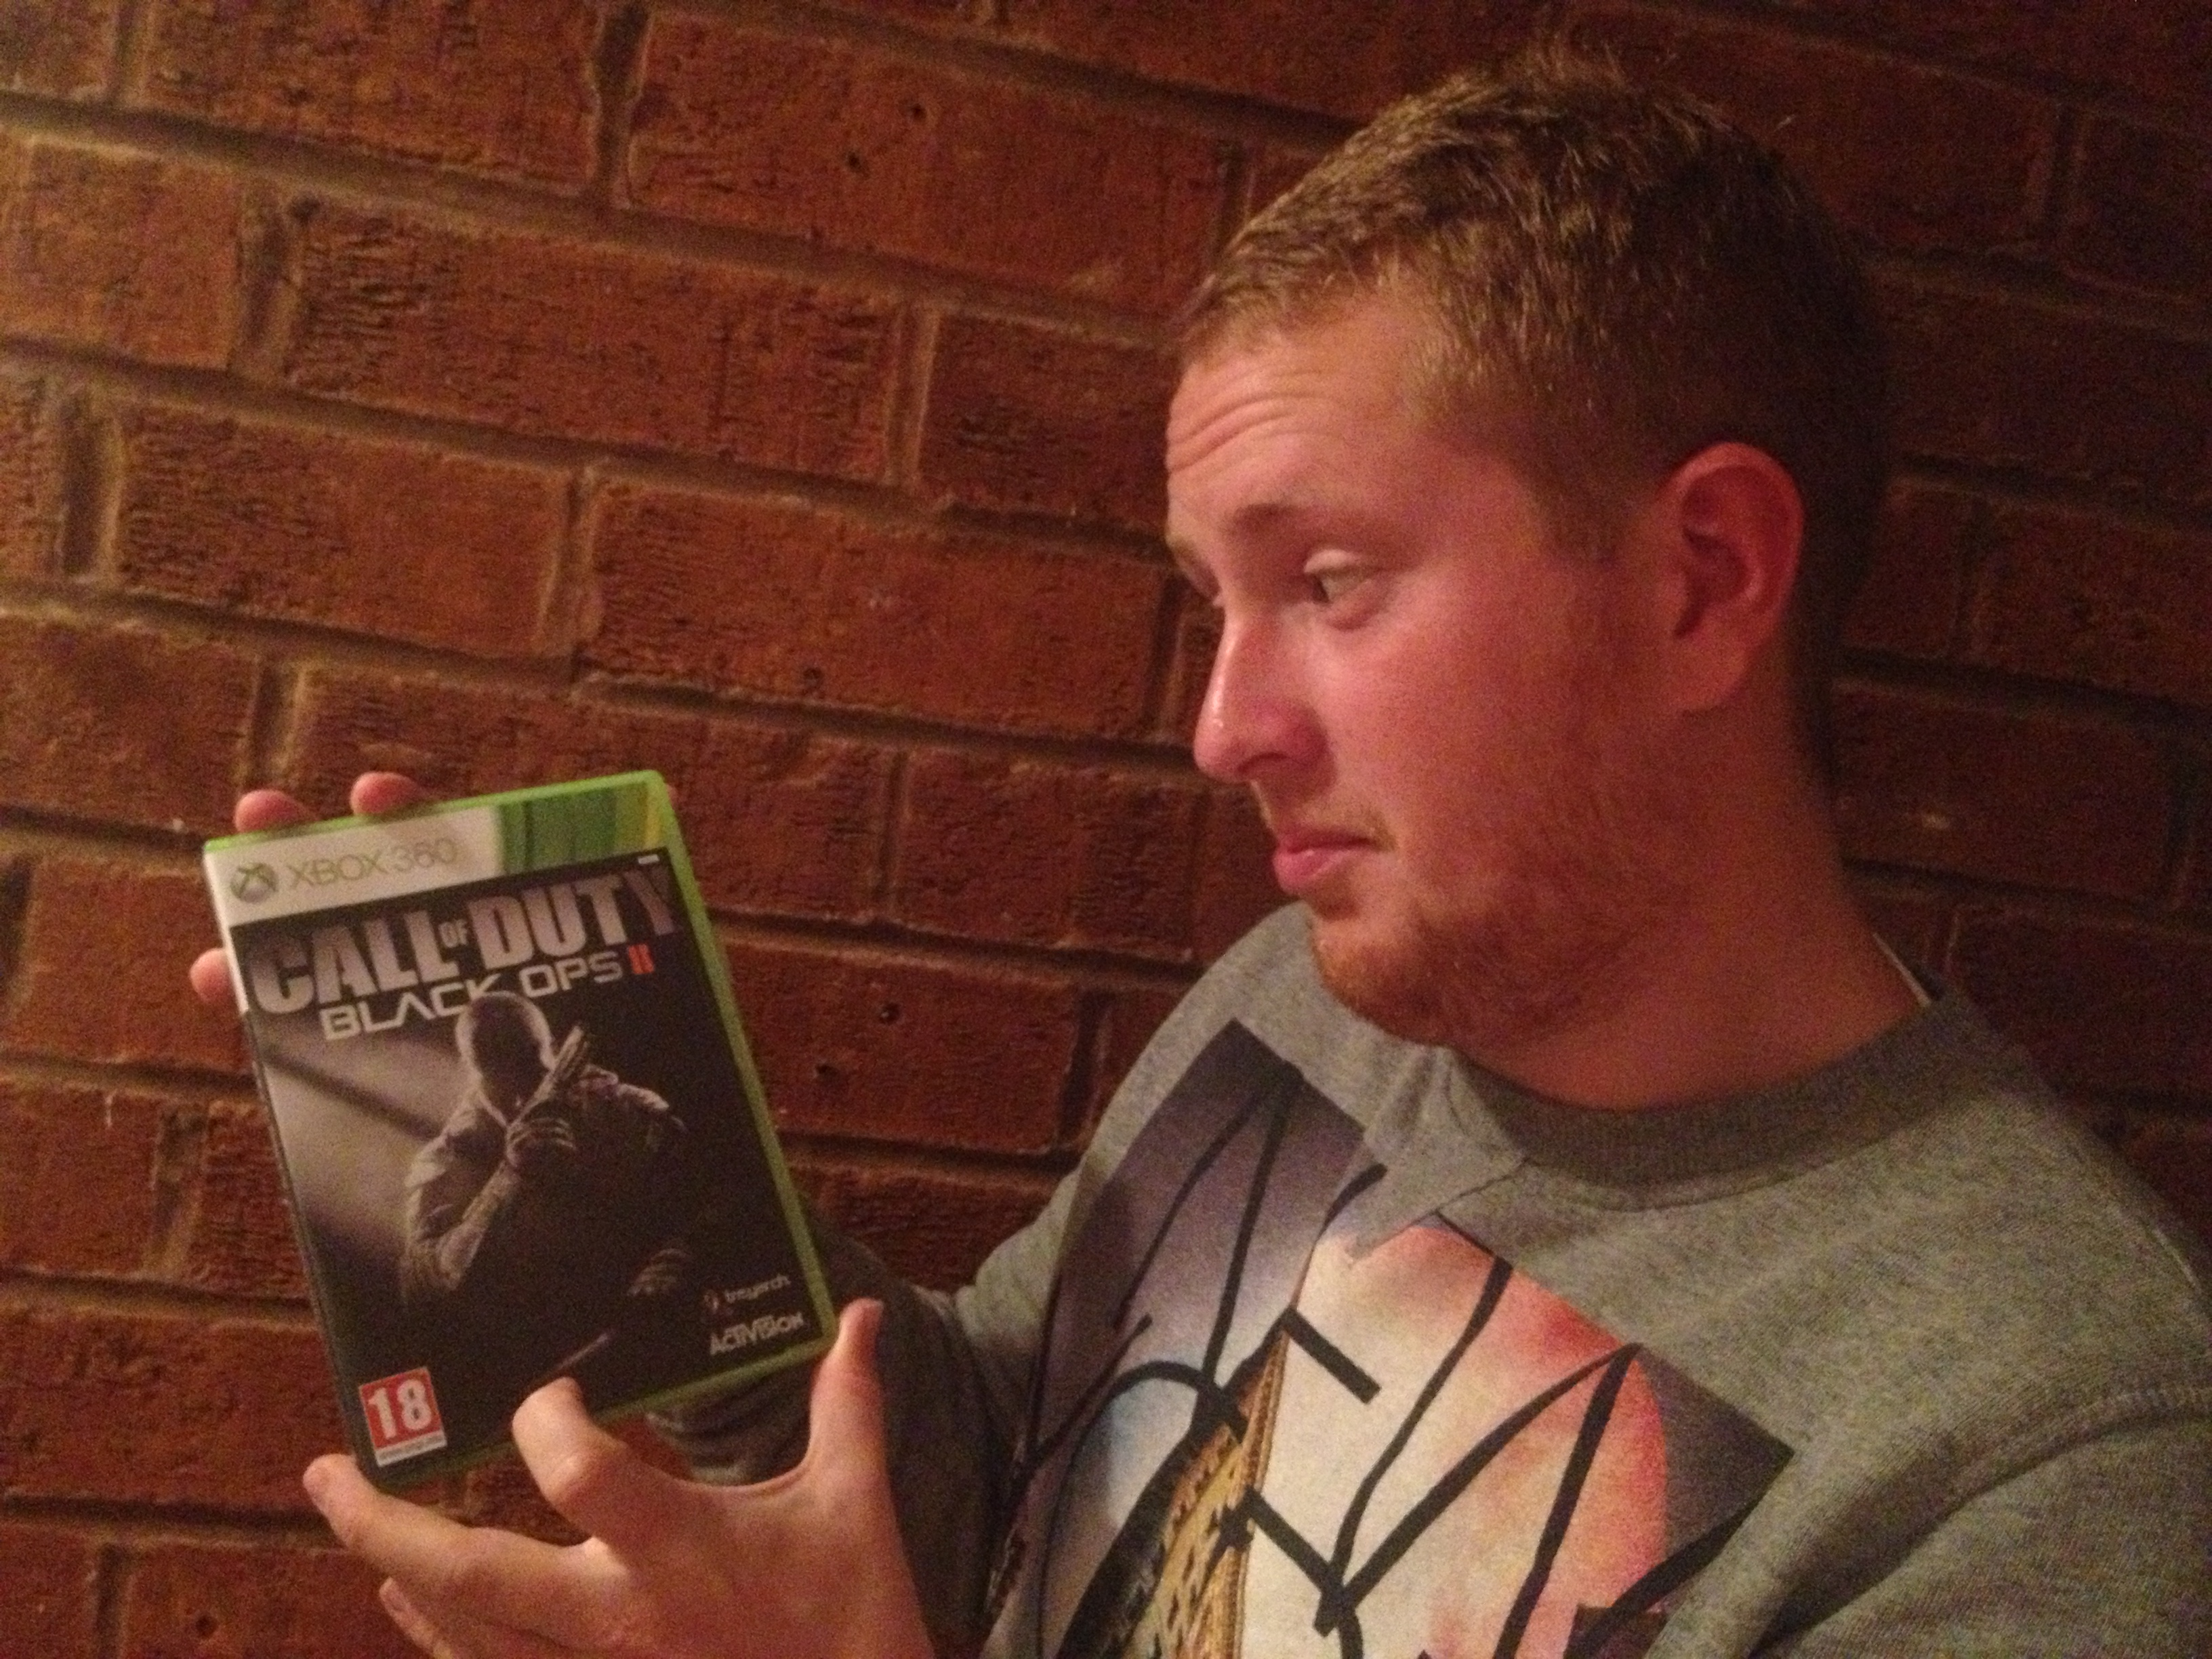 Gaming fan Keiran Loveder, from Sutton Coldfield, with his copy of Call of Duty: Black Ops II